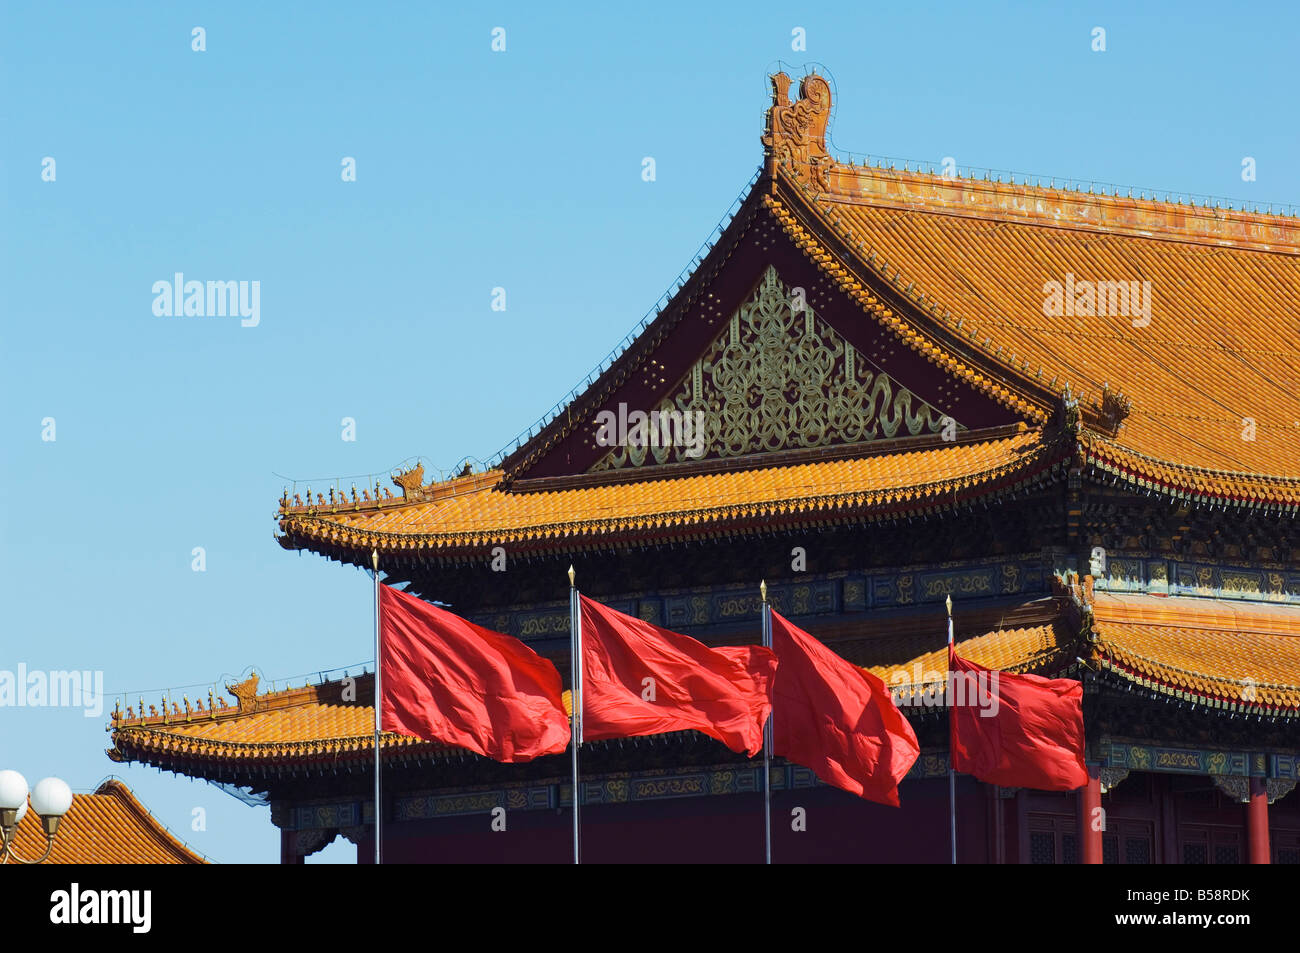 Gate of Heavenly Peace at the Forbidden City Palace Museum, Beijing, China - Stock Image